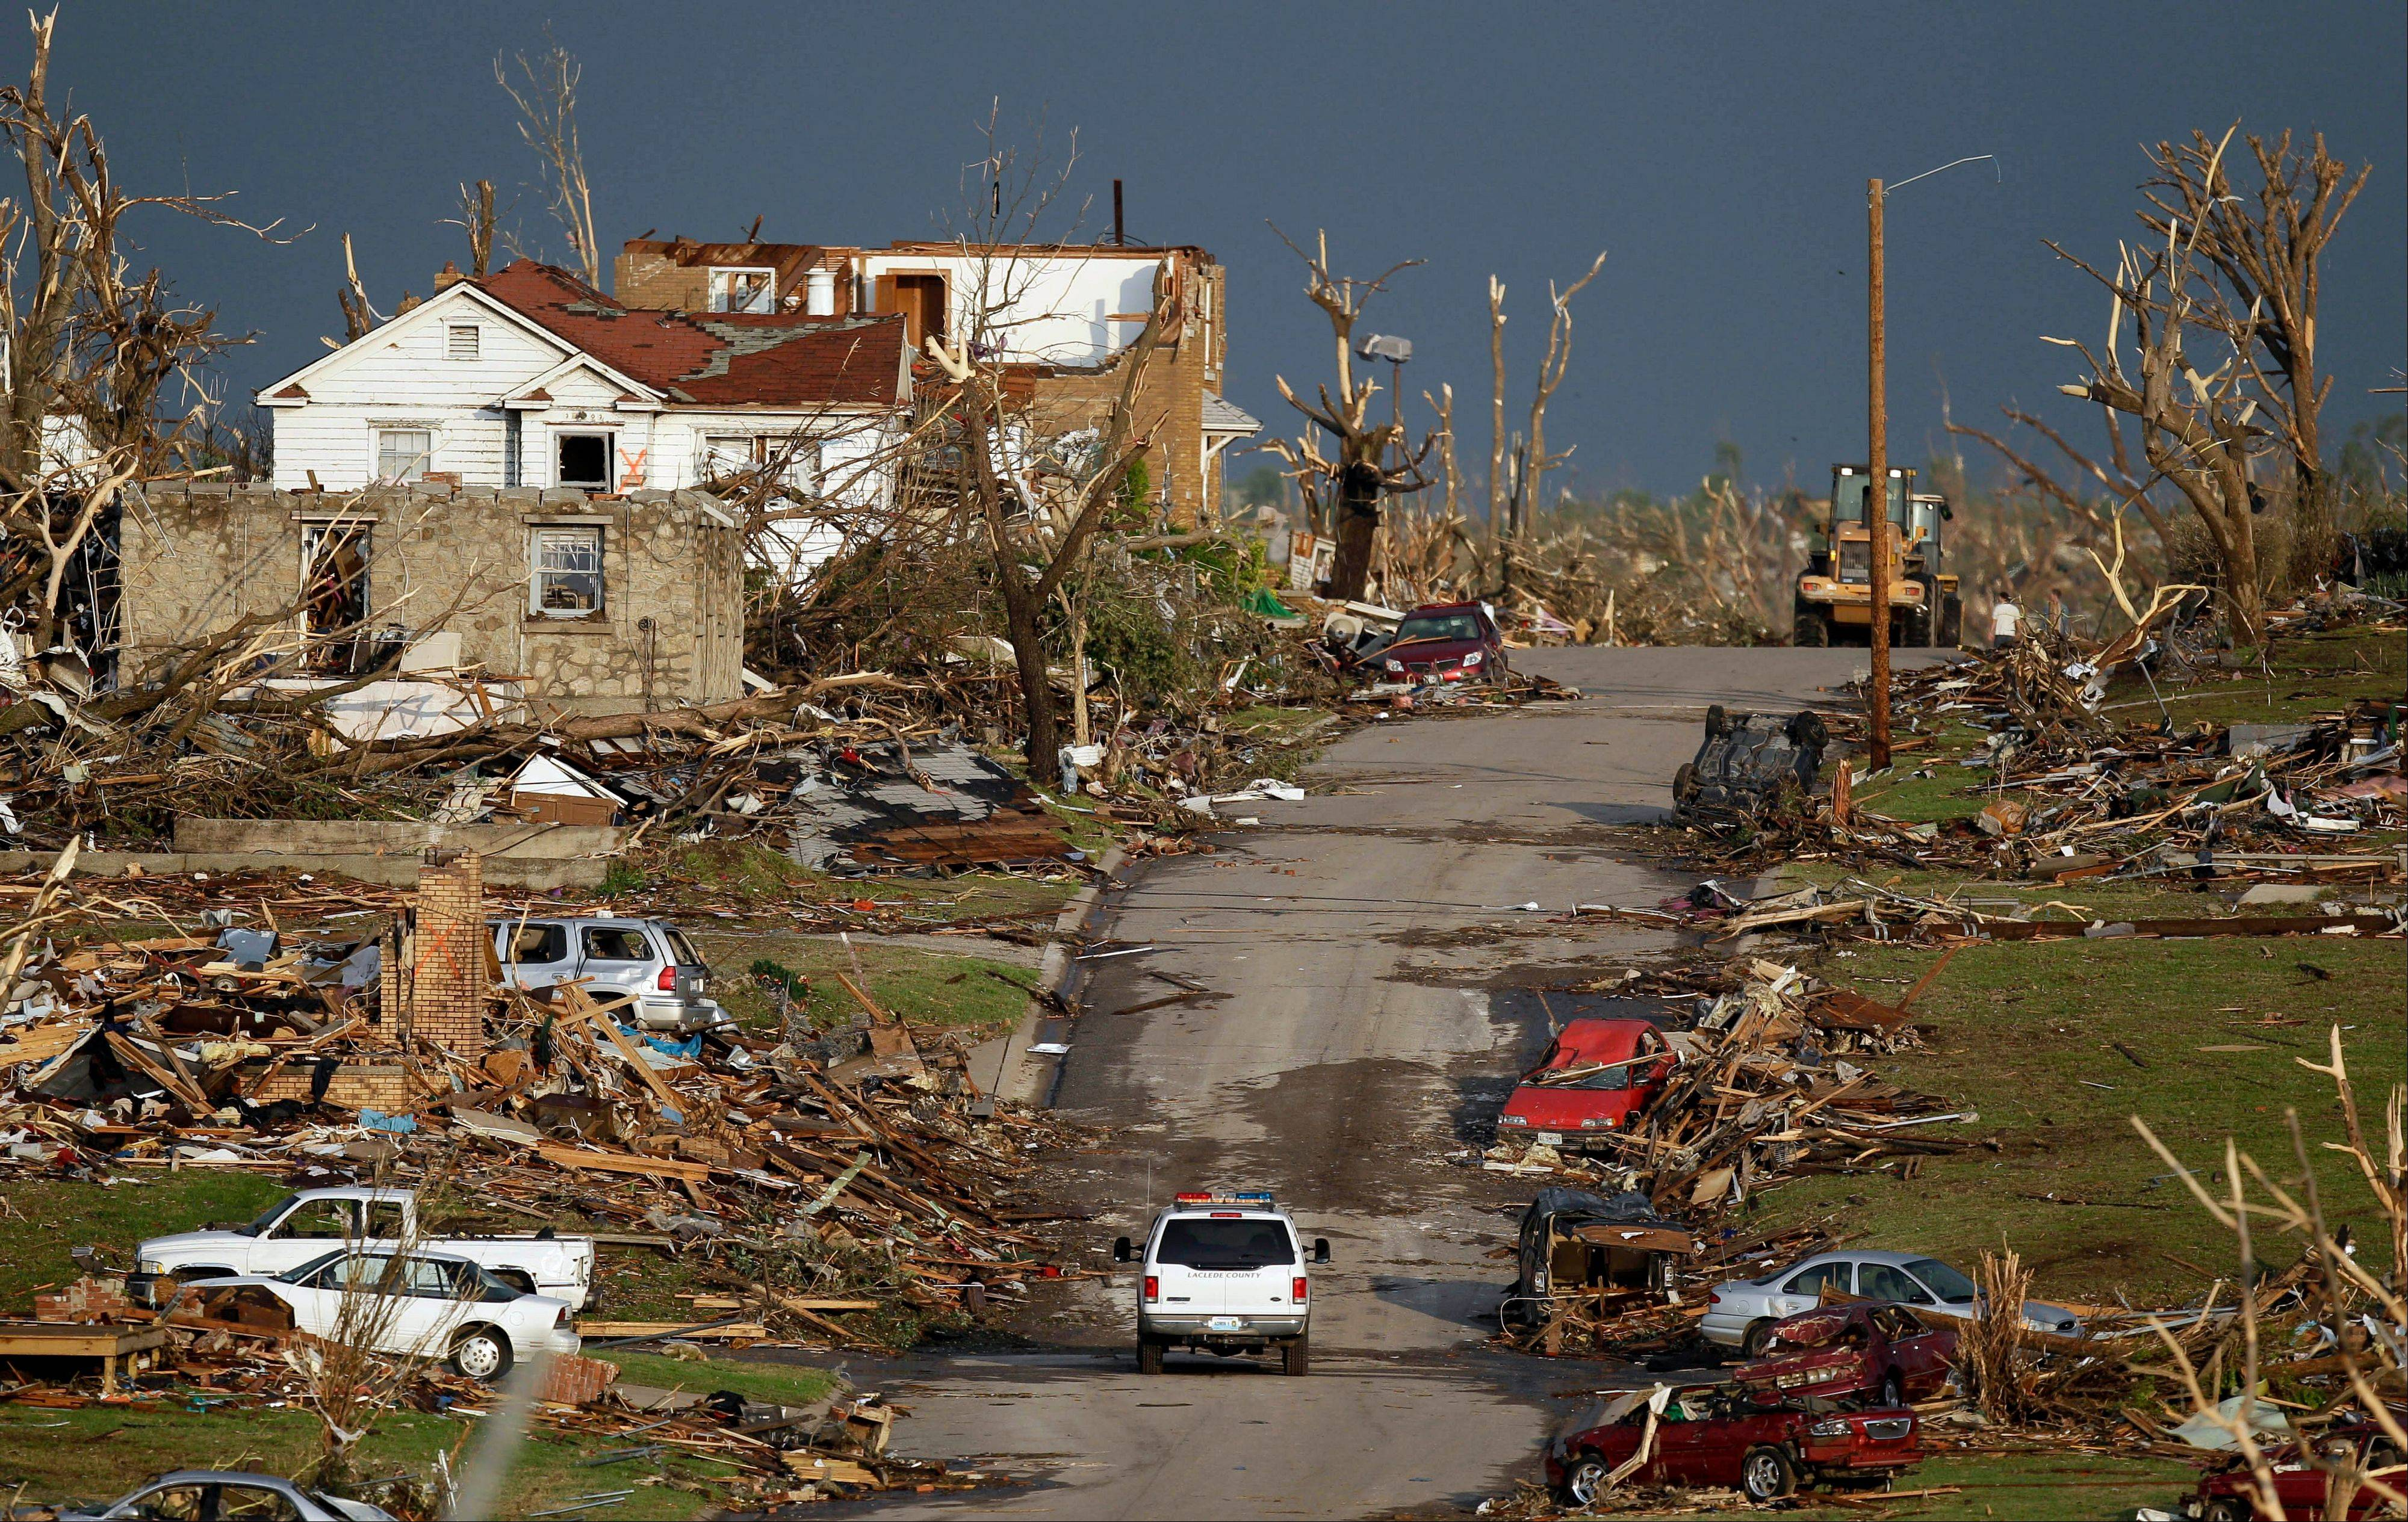 An emergency vehicle drives through a severely damaged neighborhood in Joplin, Mo., Monday, May 23, 2011. A large tornado moved through much of the city Sunday, damaging a hospital and hundreds of homes and businesses and killing at least 89 people.